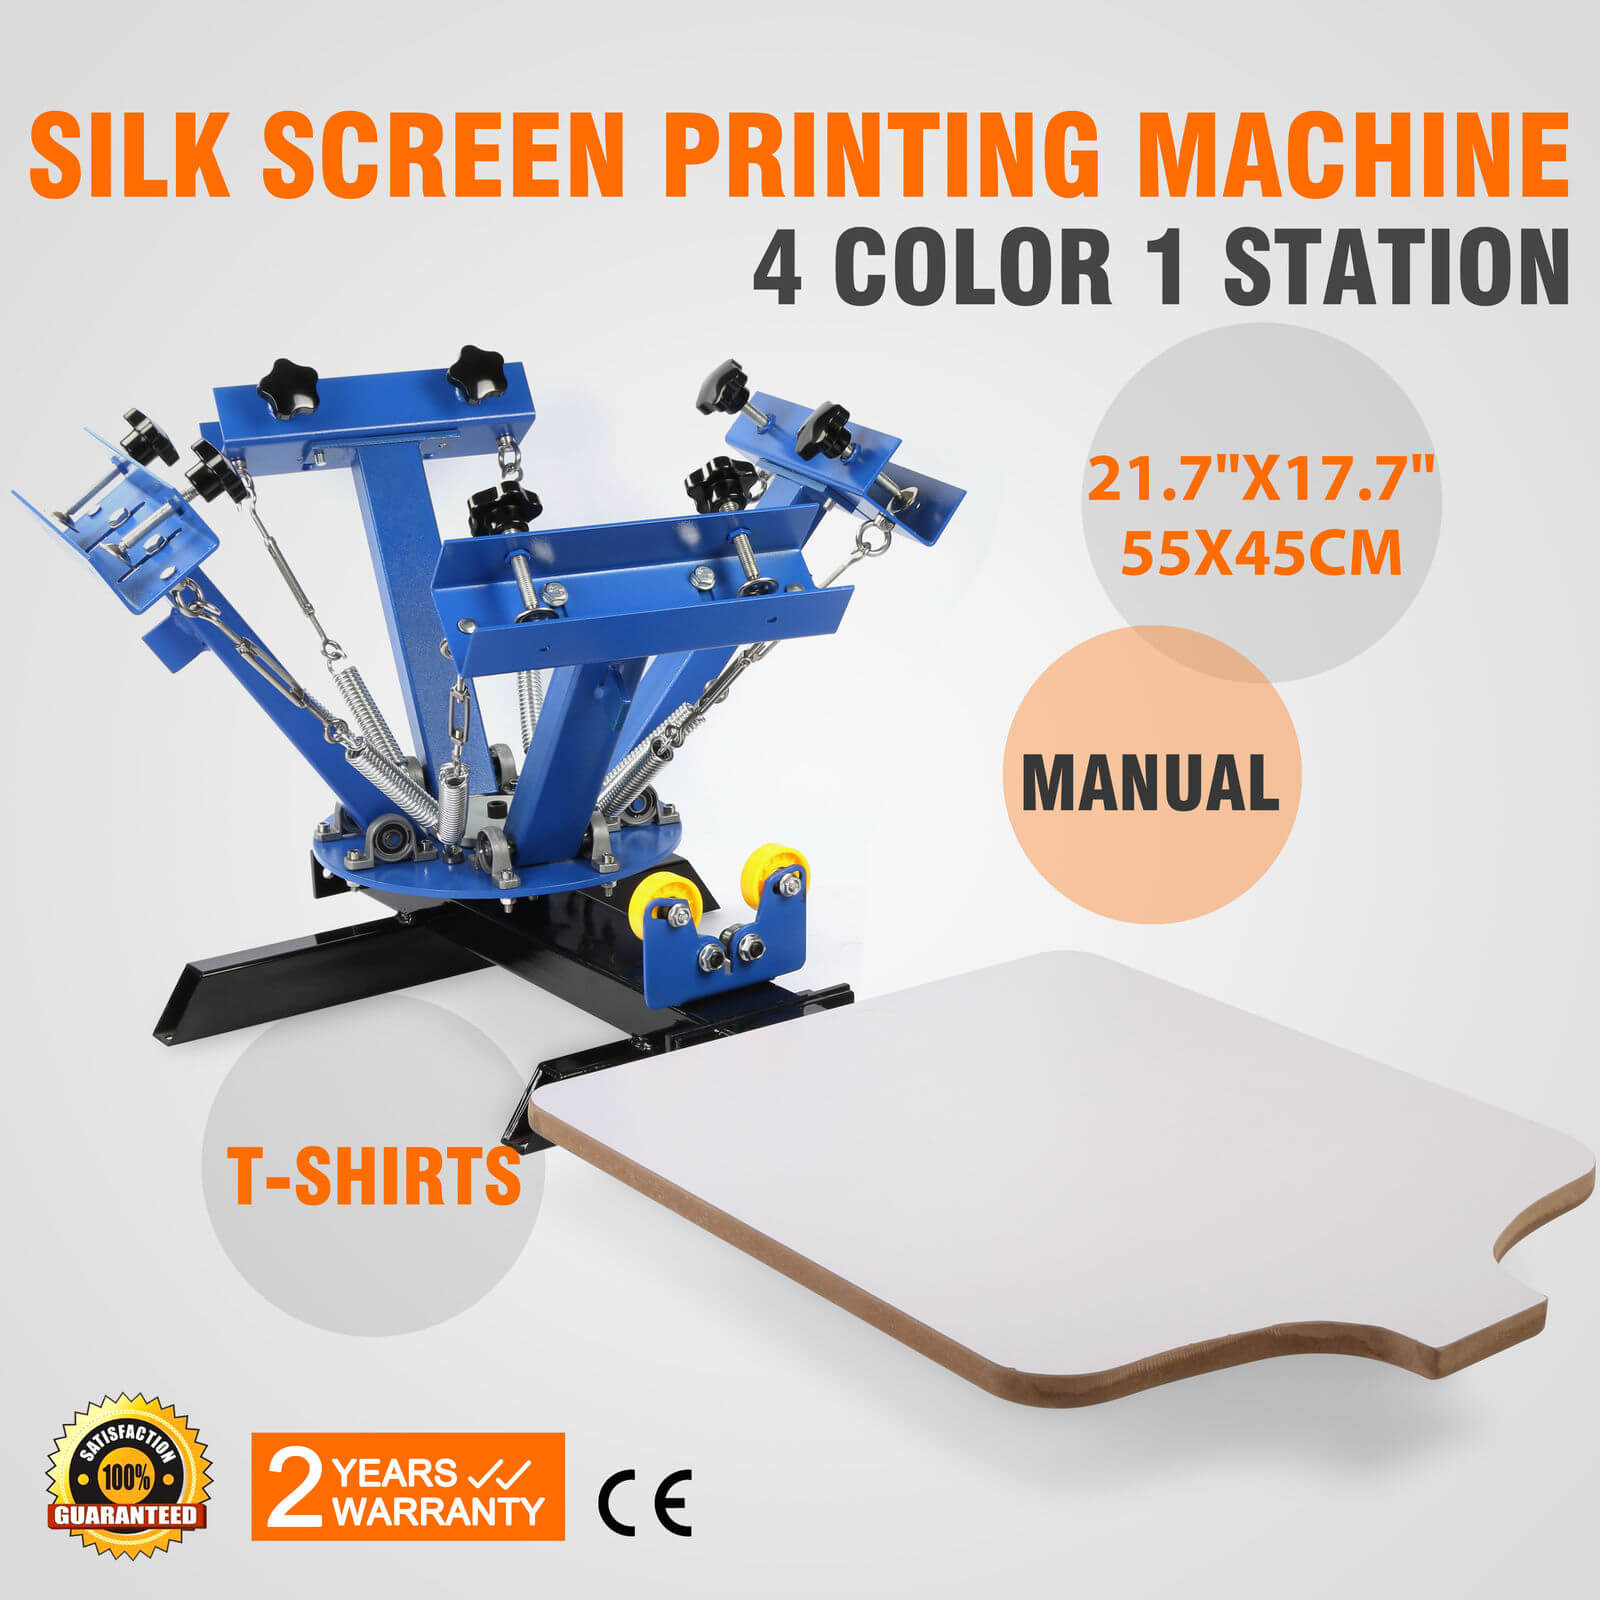 e13962f0 4 color 1 station Screen Printing Machine: DIY T-Shirt Press Printer